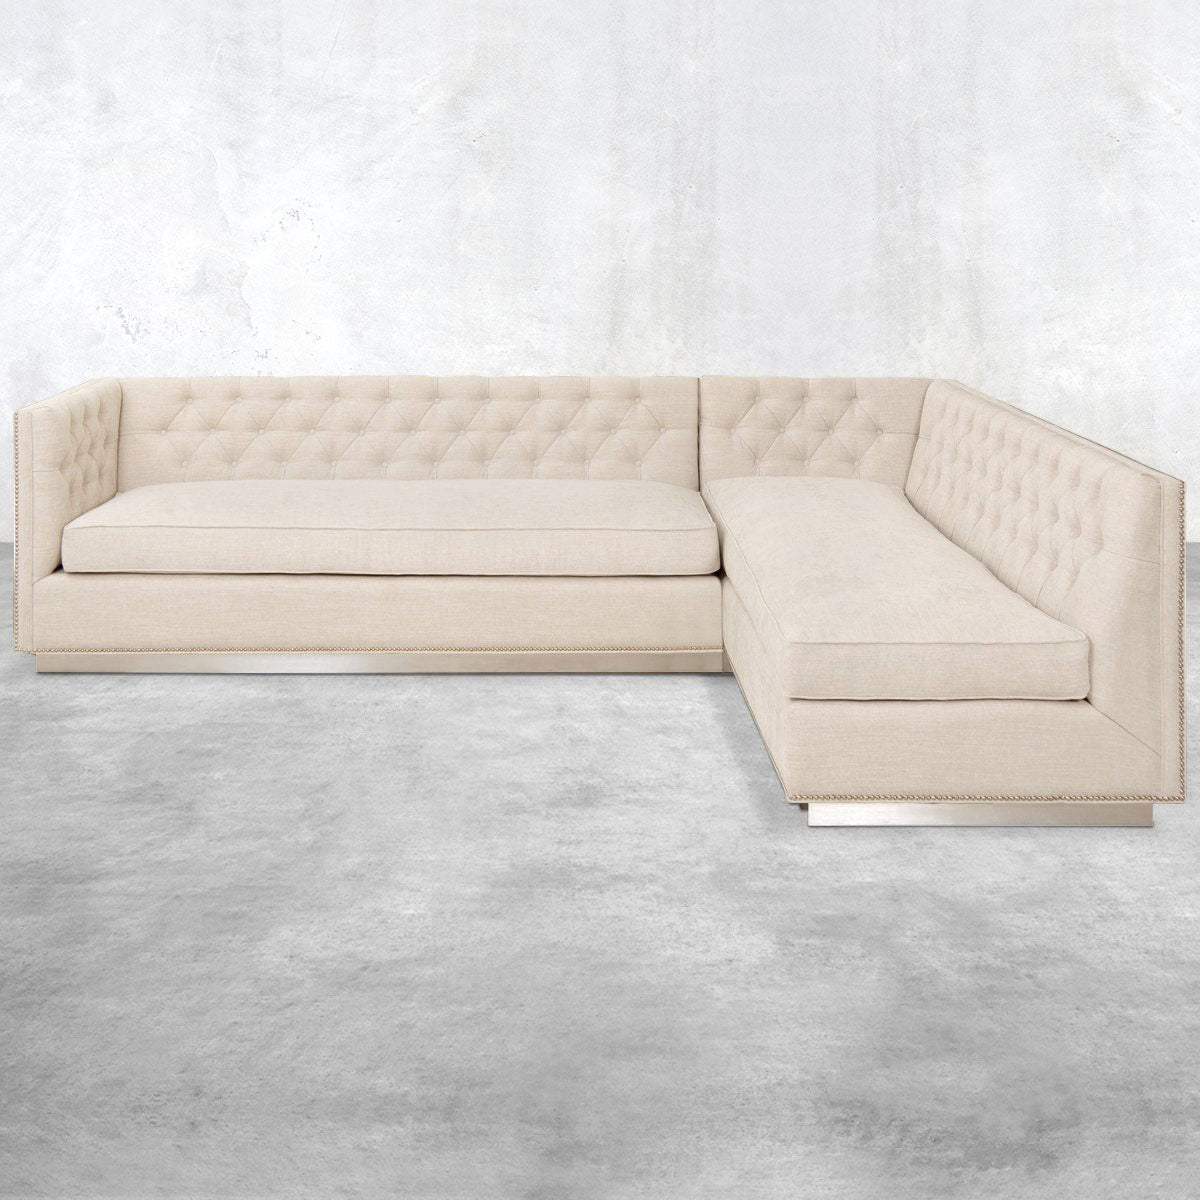 007 Sectional in Chenille